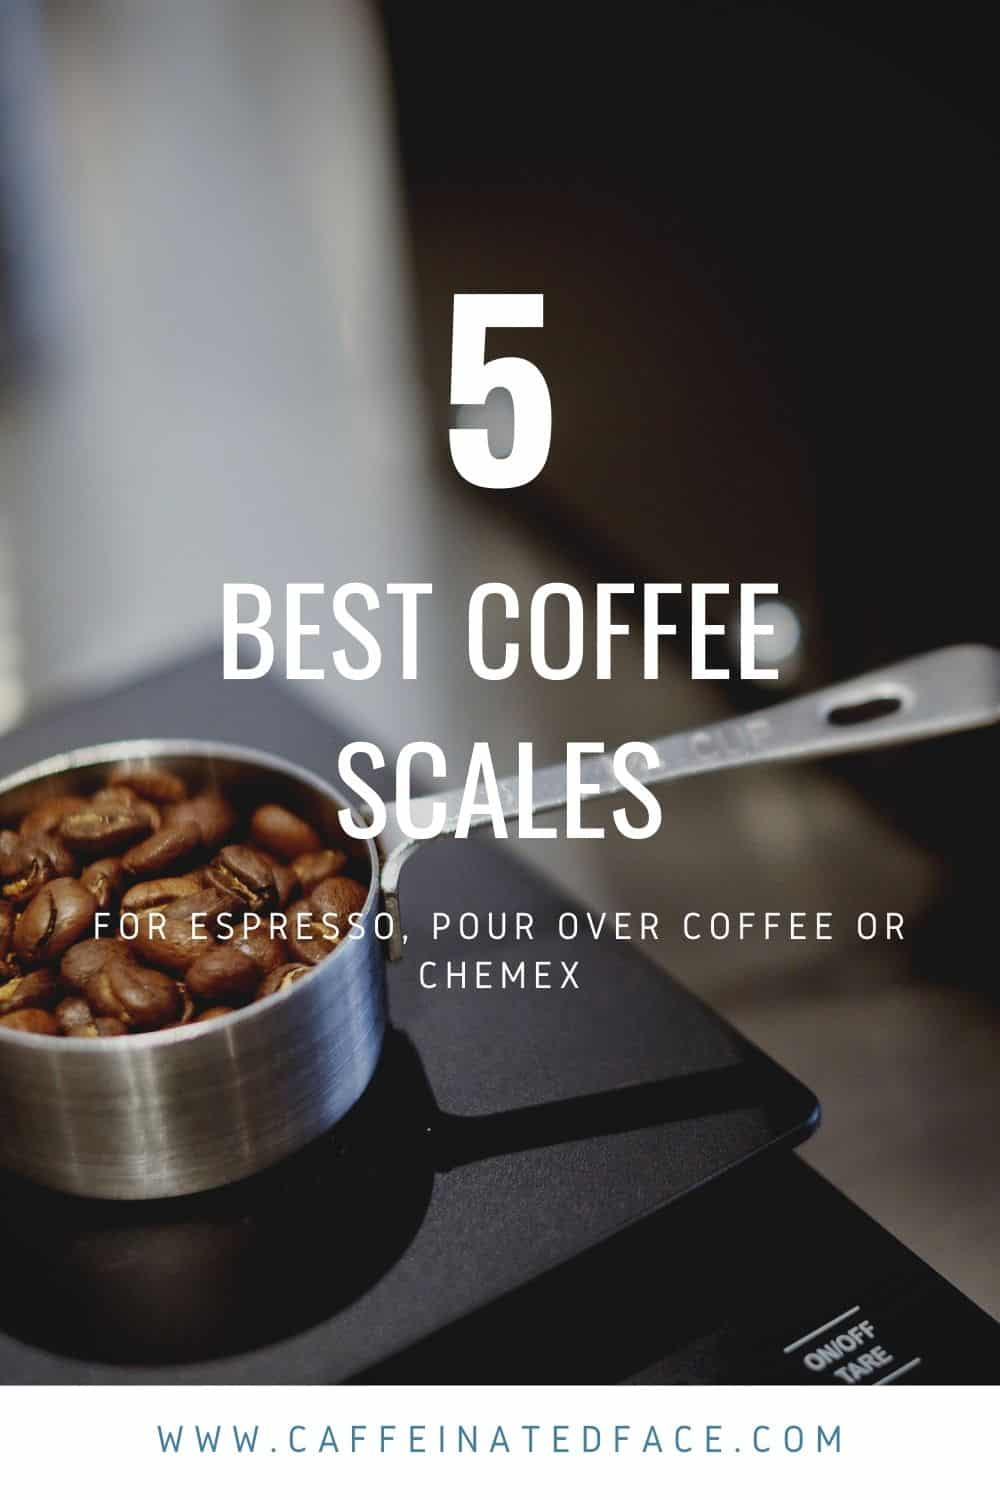 BEST COFFEE SCALE FOR ESPRESSO (1)